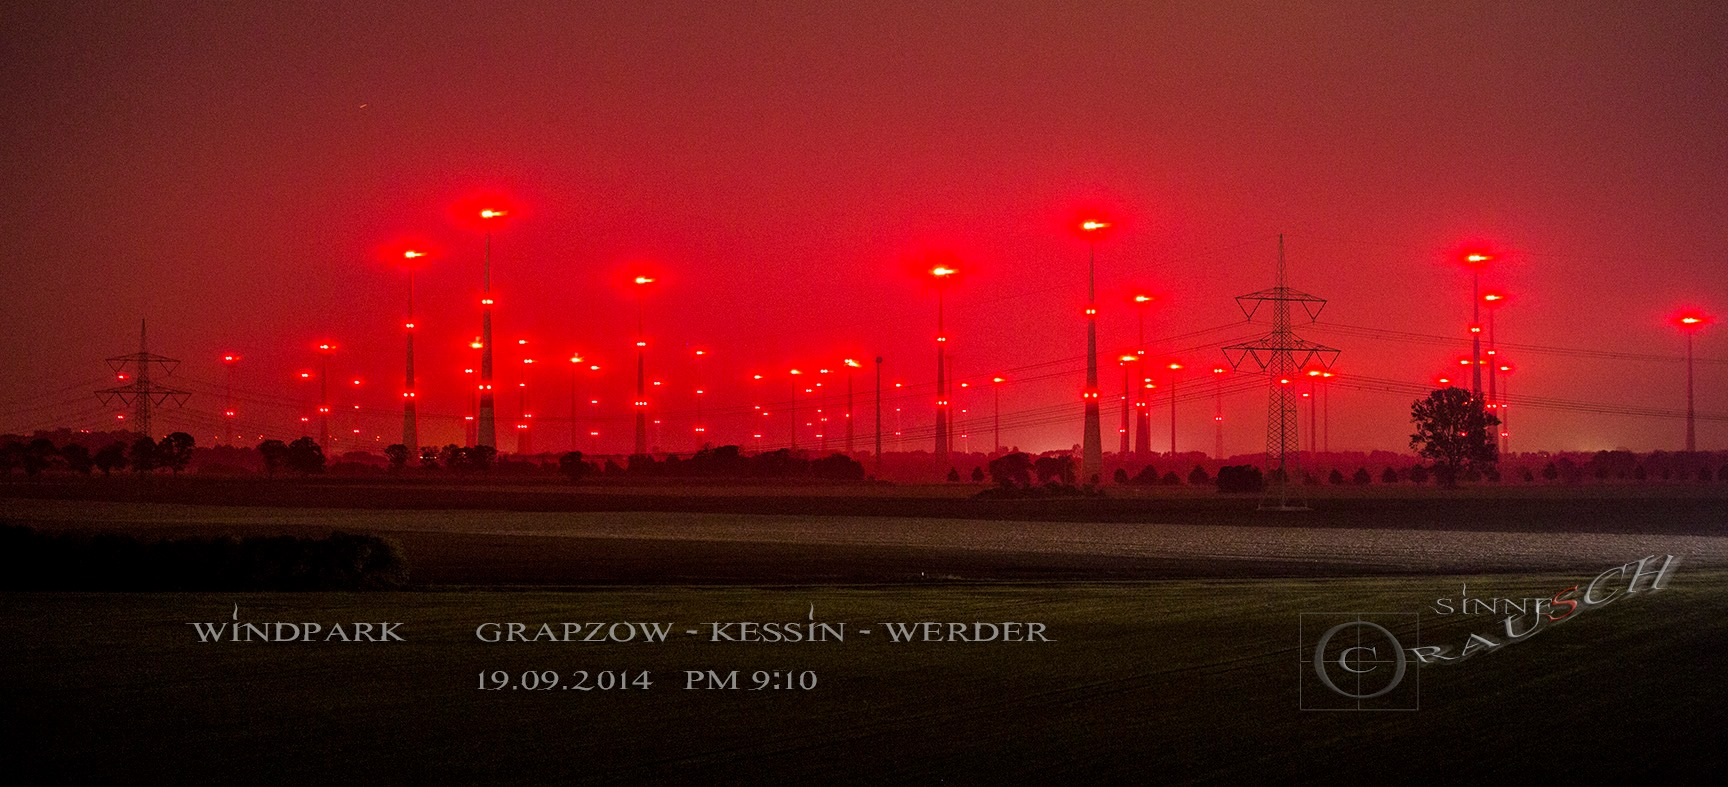 Windpark grapzow